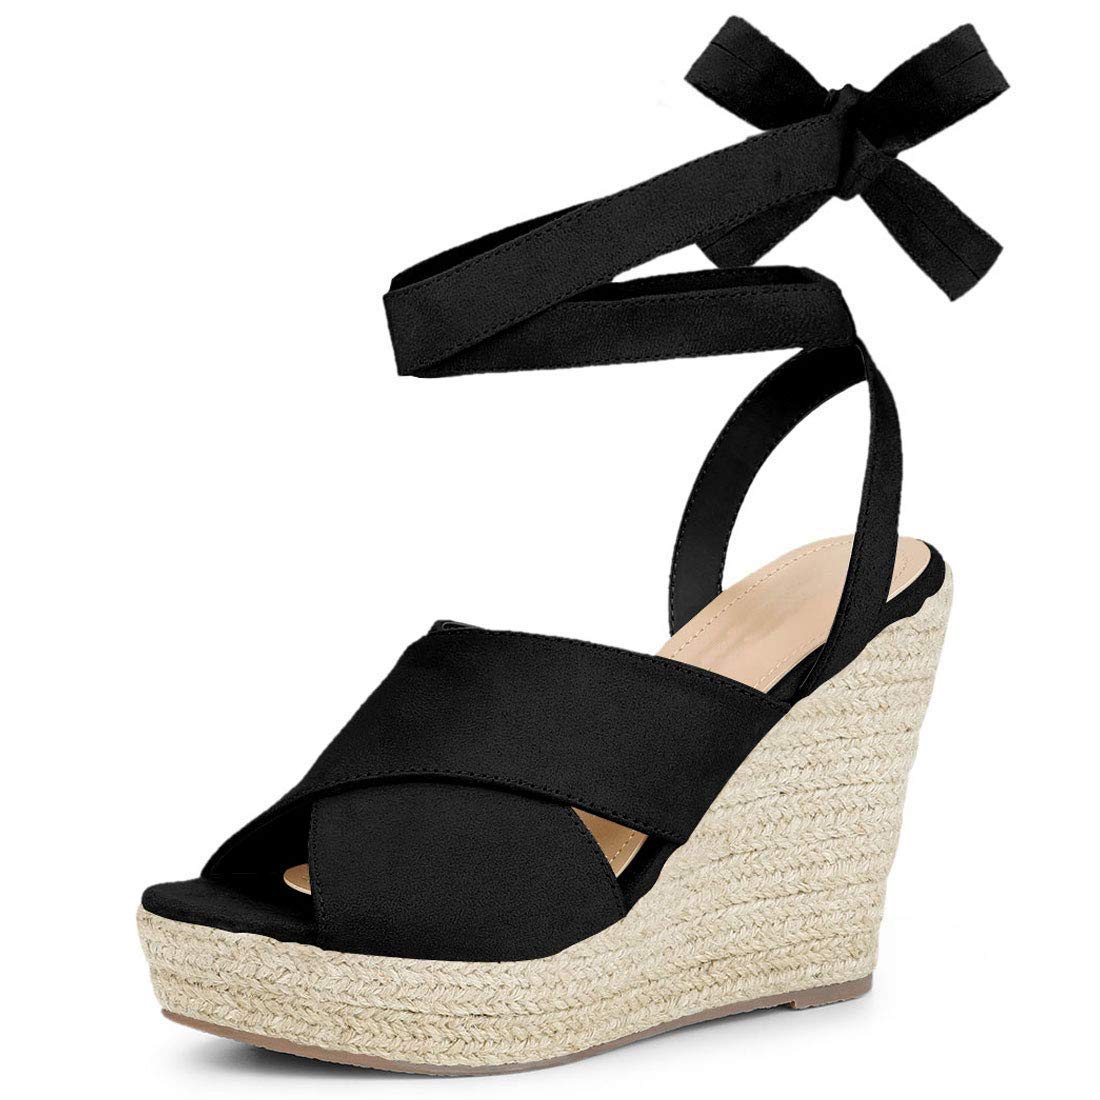 90dcf8f1bd Amazon.com | Nailyhome Womens Lace Up Espadrille Platform Wedge Sandals  Ankle Strap Mid Heel Slingback Summer Shoes | Platforms & Wedges